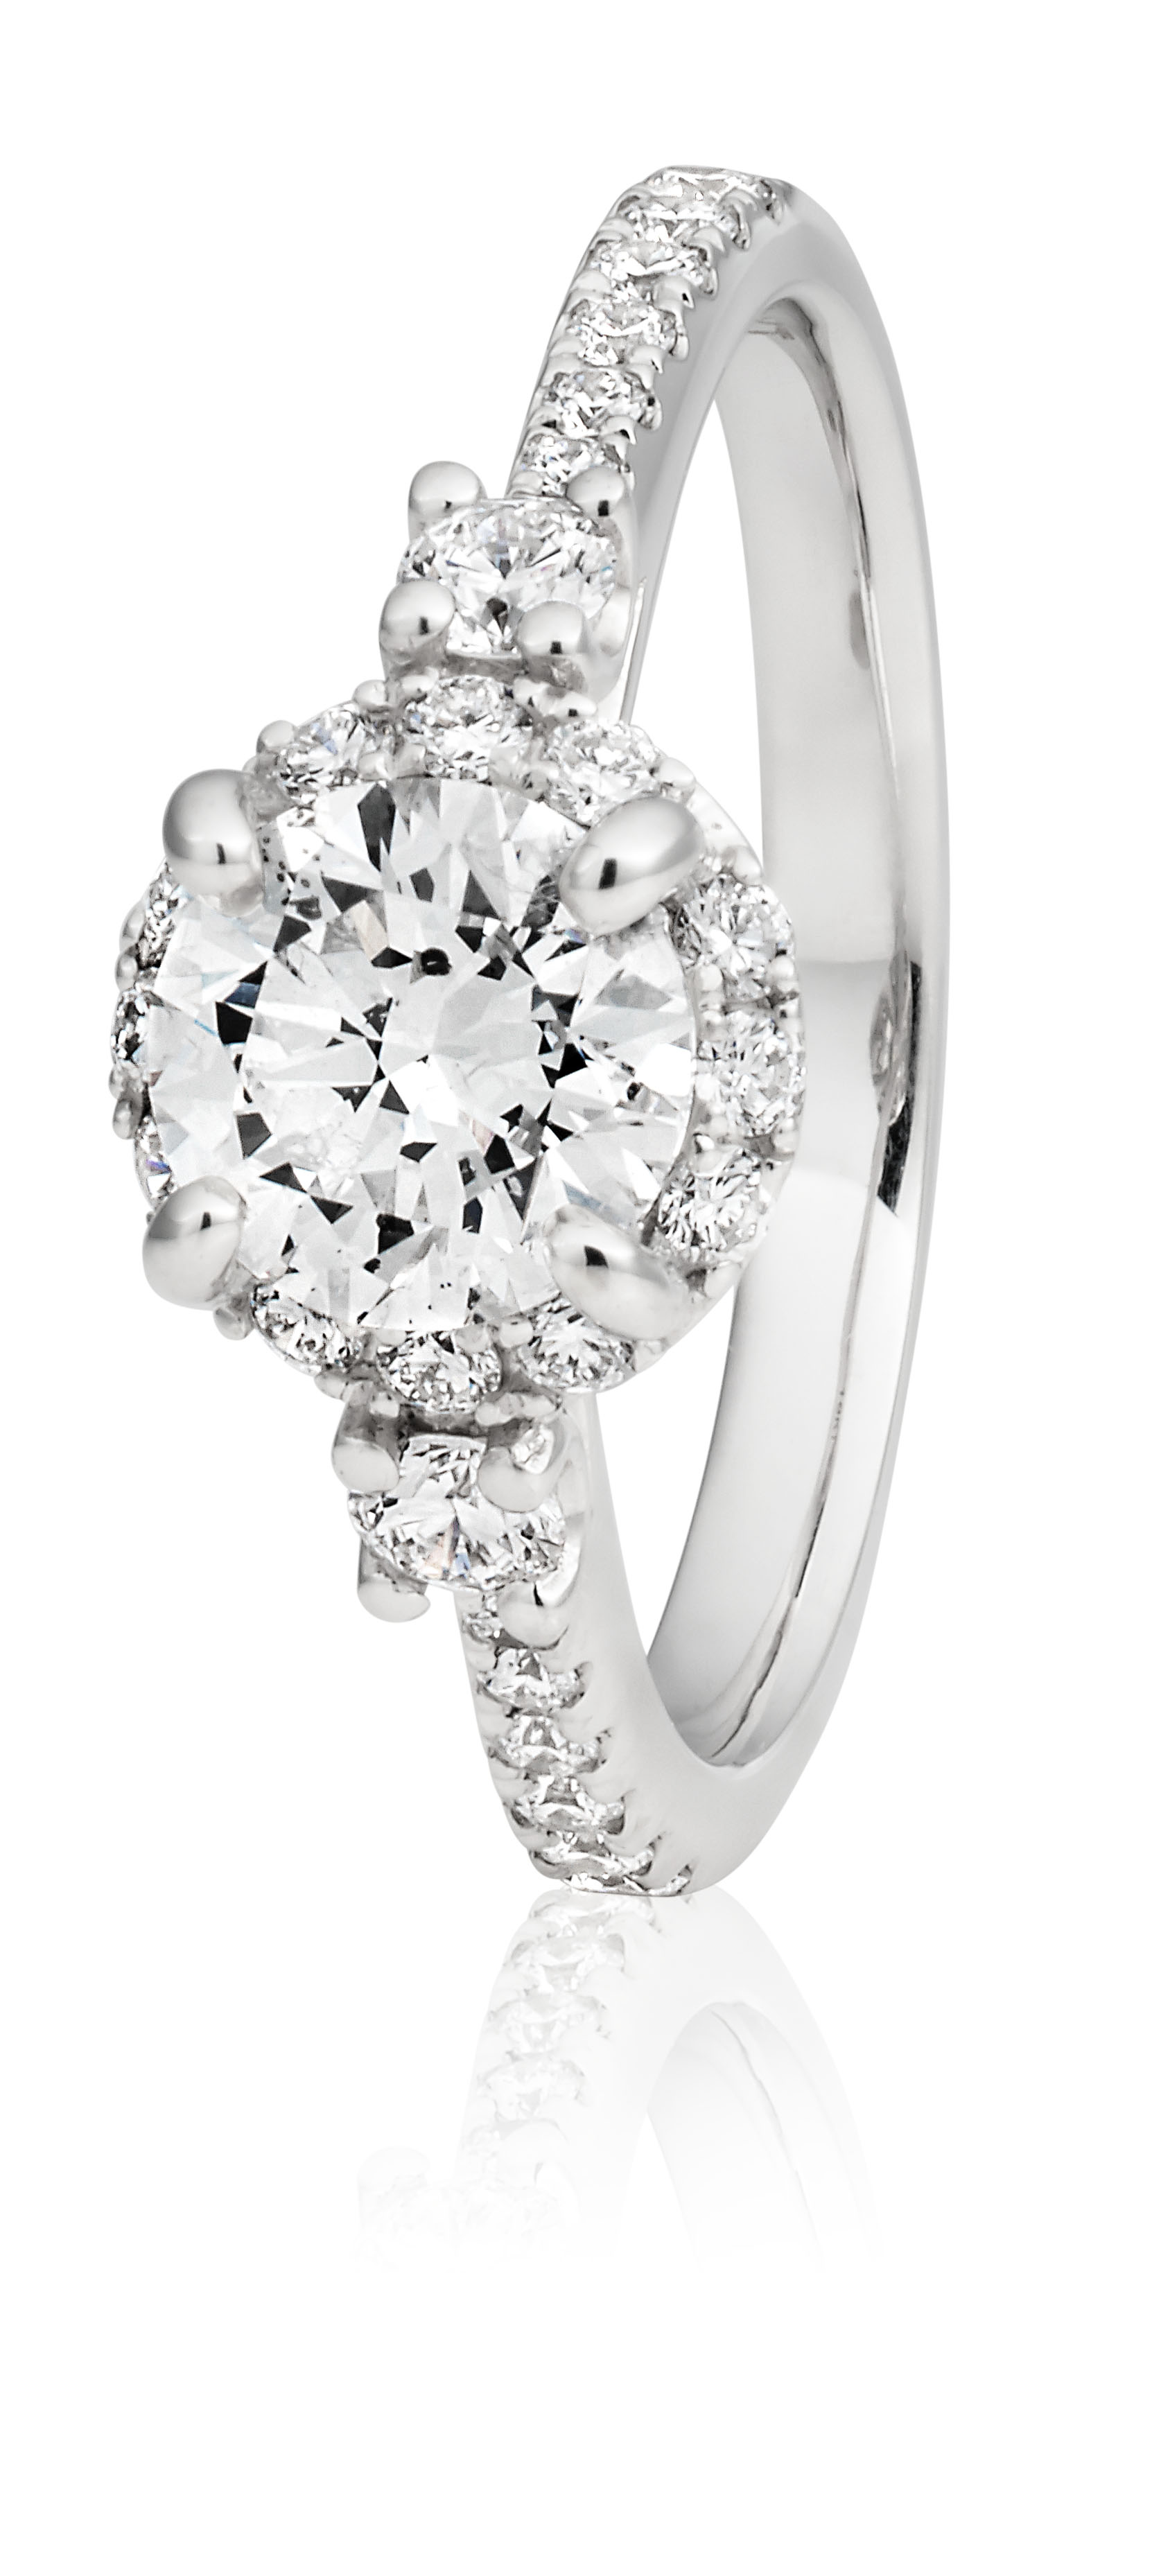 18ct White Gold Ring with 1.50 Carat of Diamonds